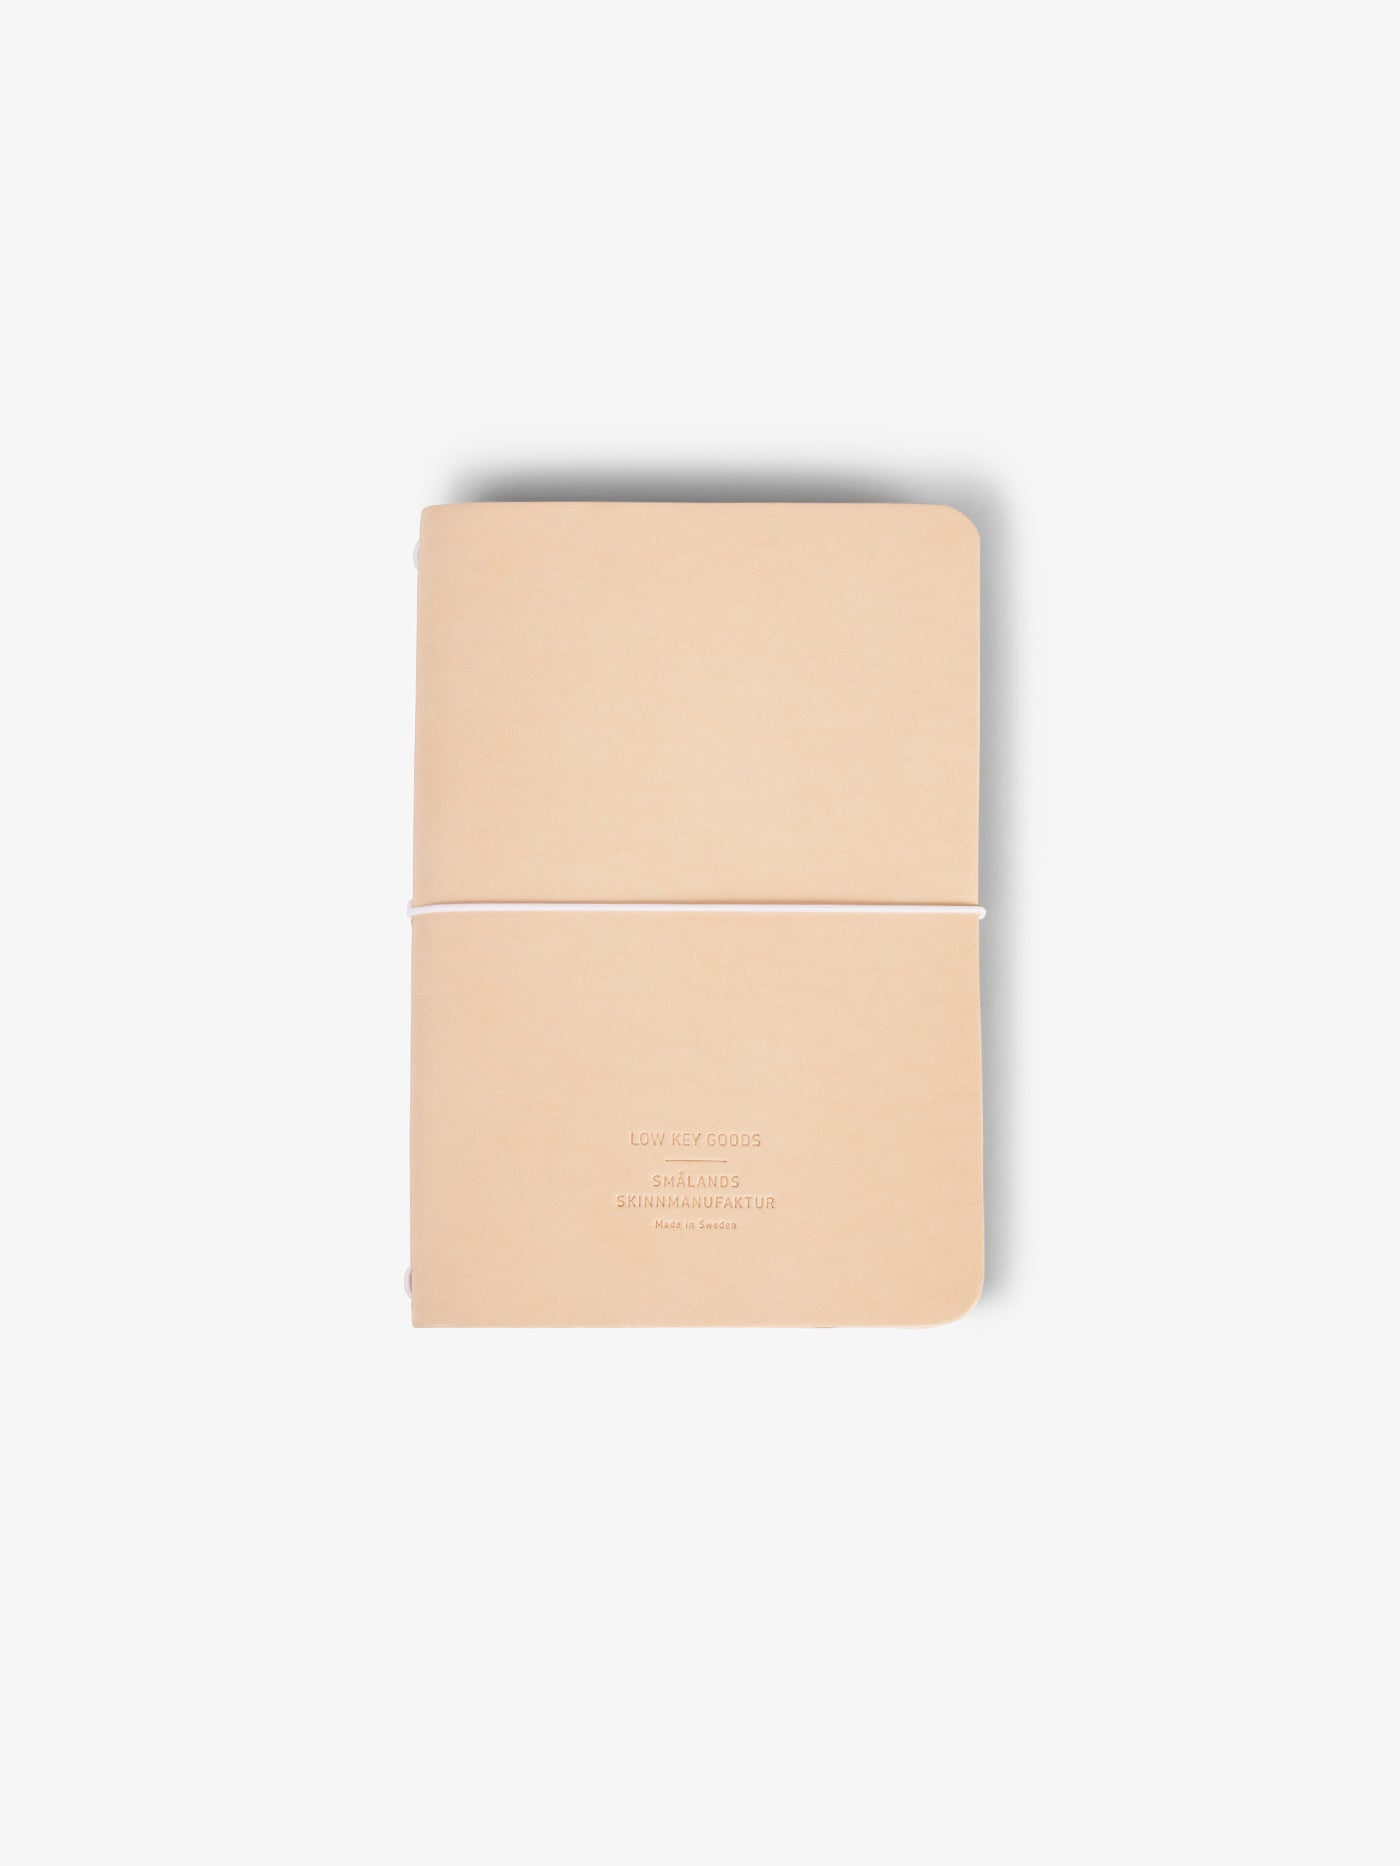 Notebook Case A6 Low key goods